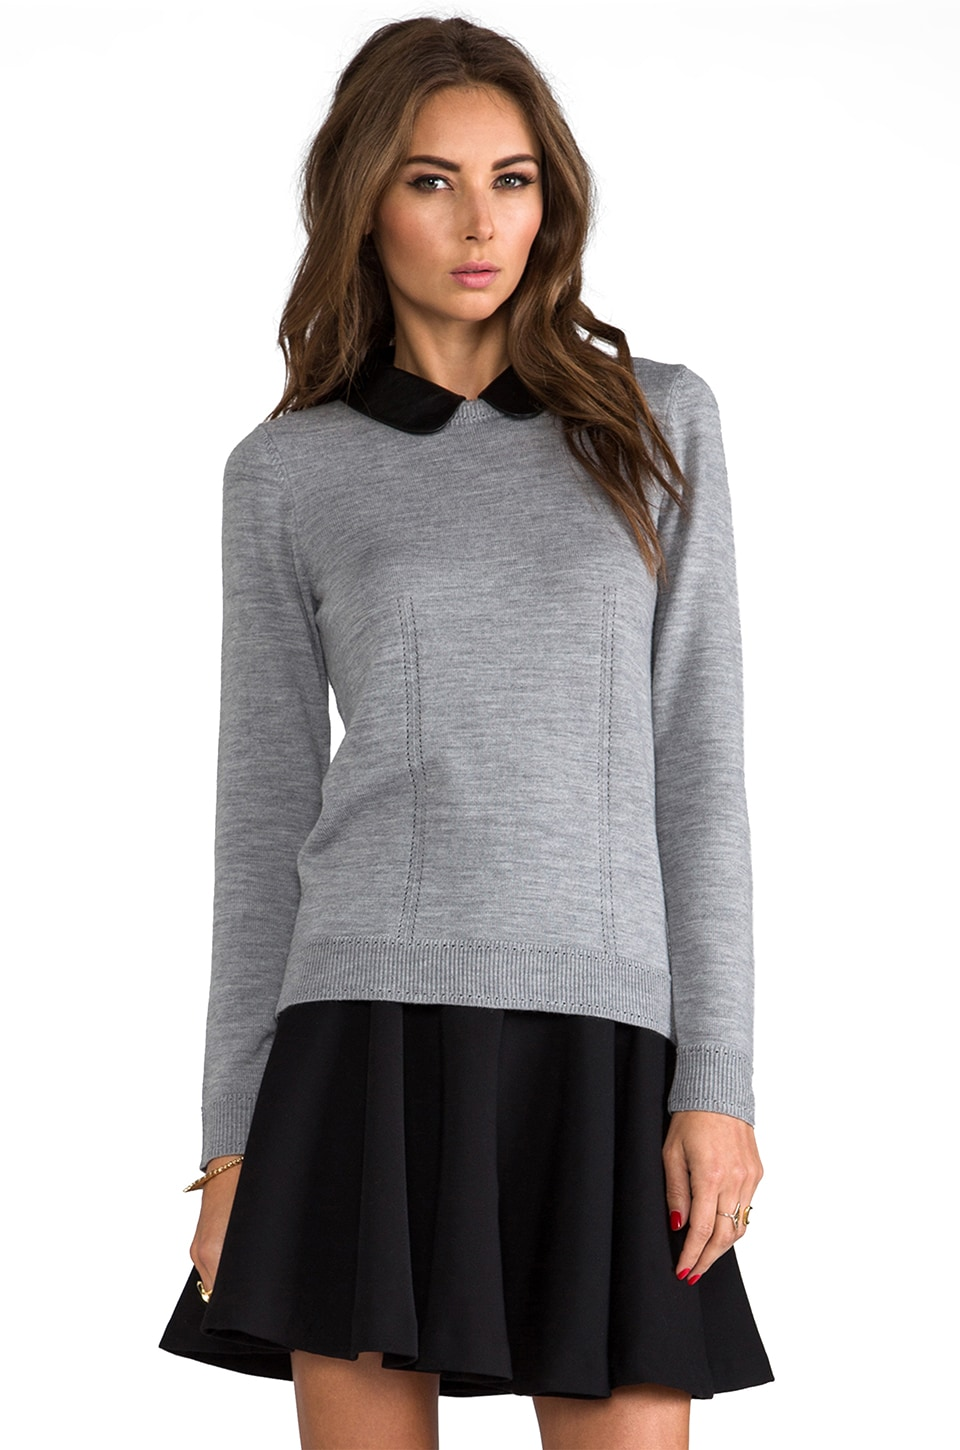 MILLY Knit Leather Collar Sweater in Charcoal